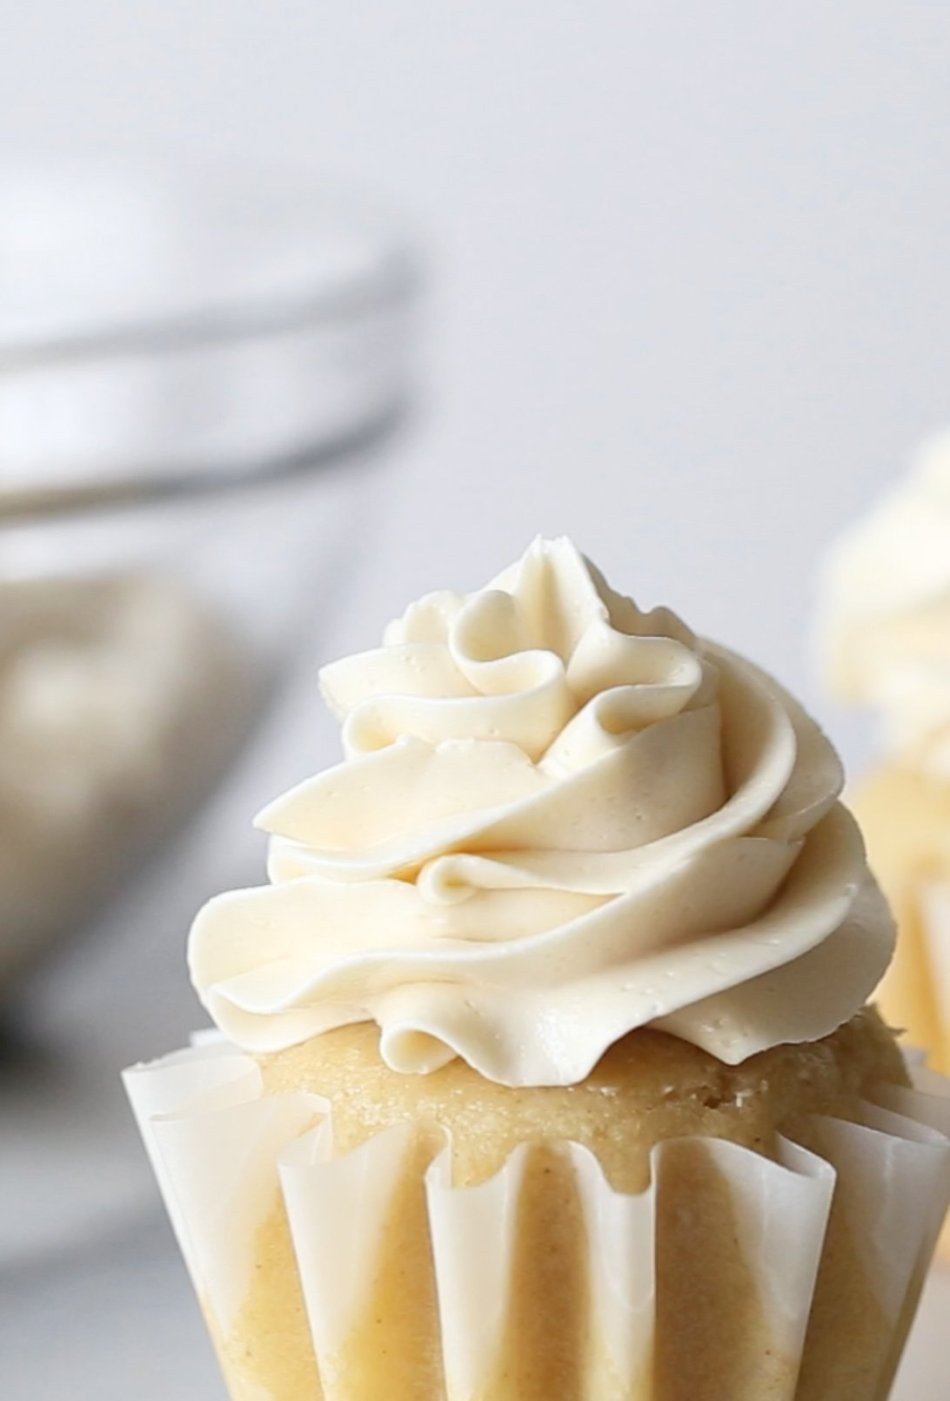 Naturally Sweetened Swiss Meringue Buttercream | Grain, gluten, and refined sugar free